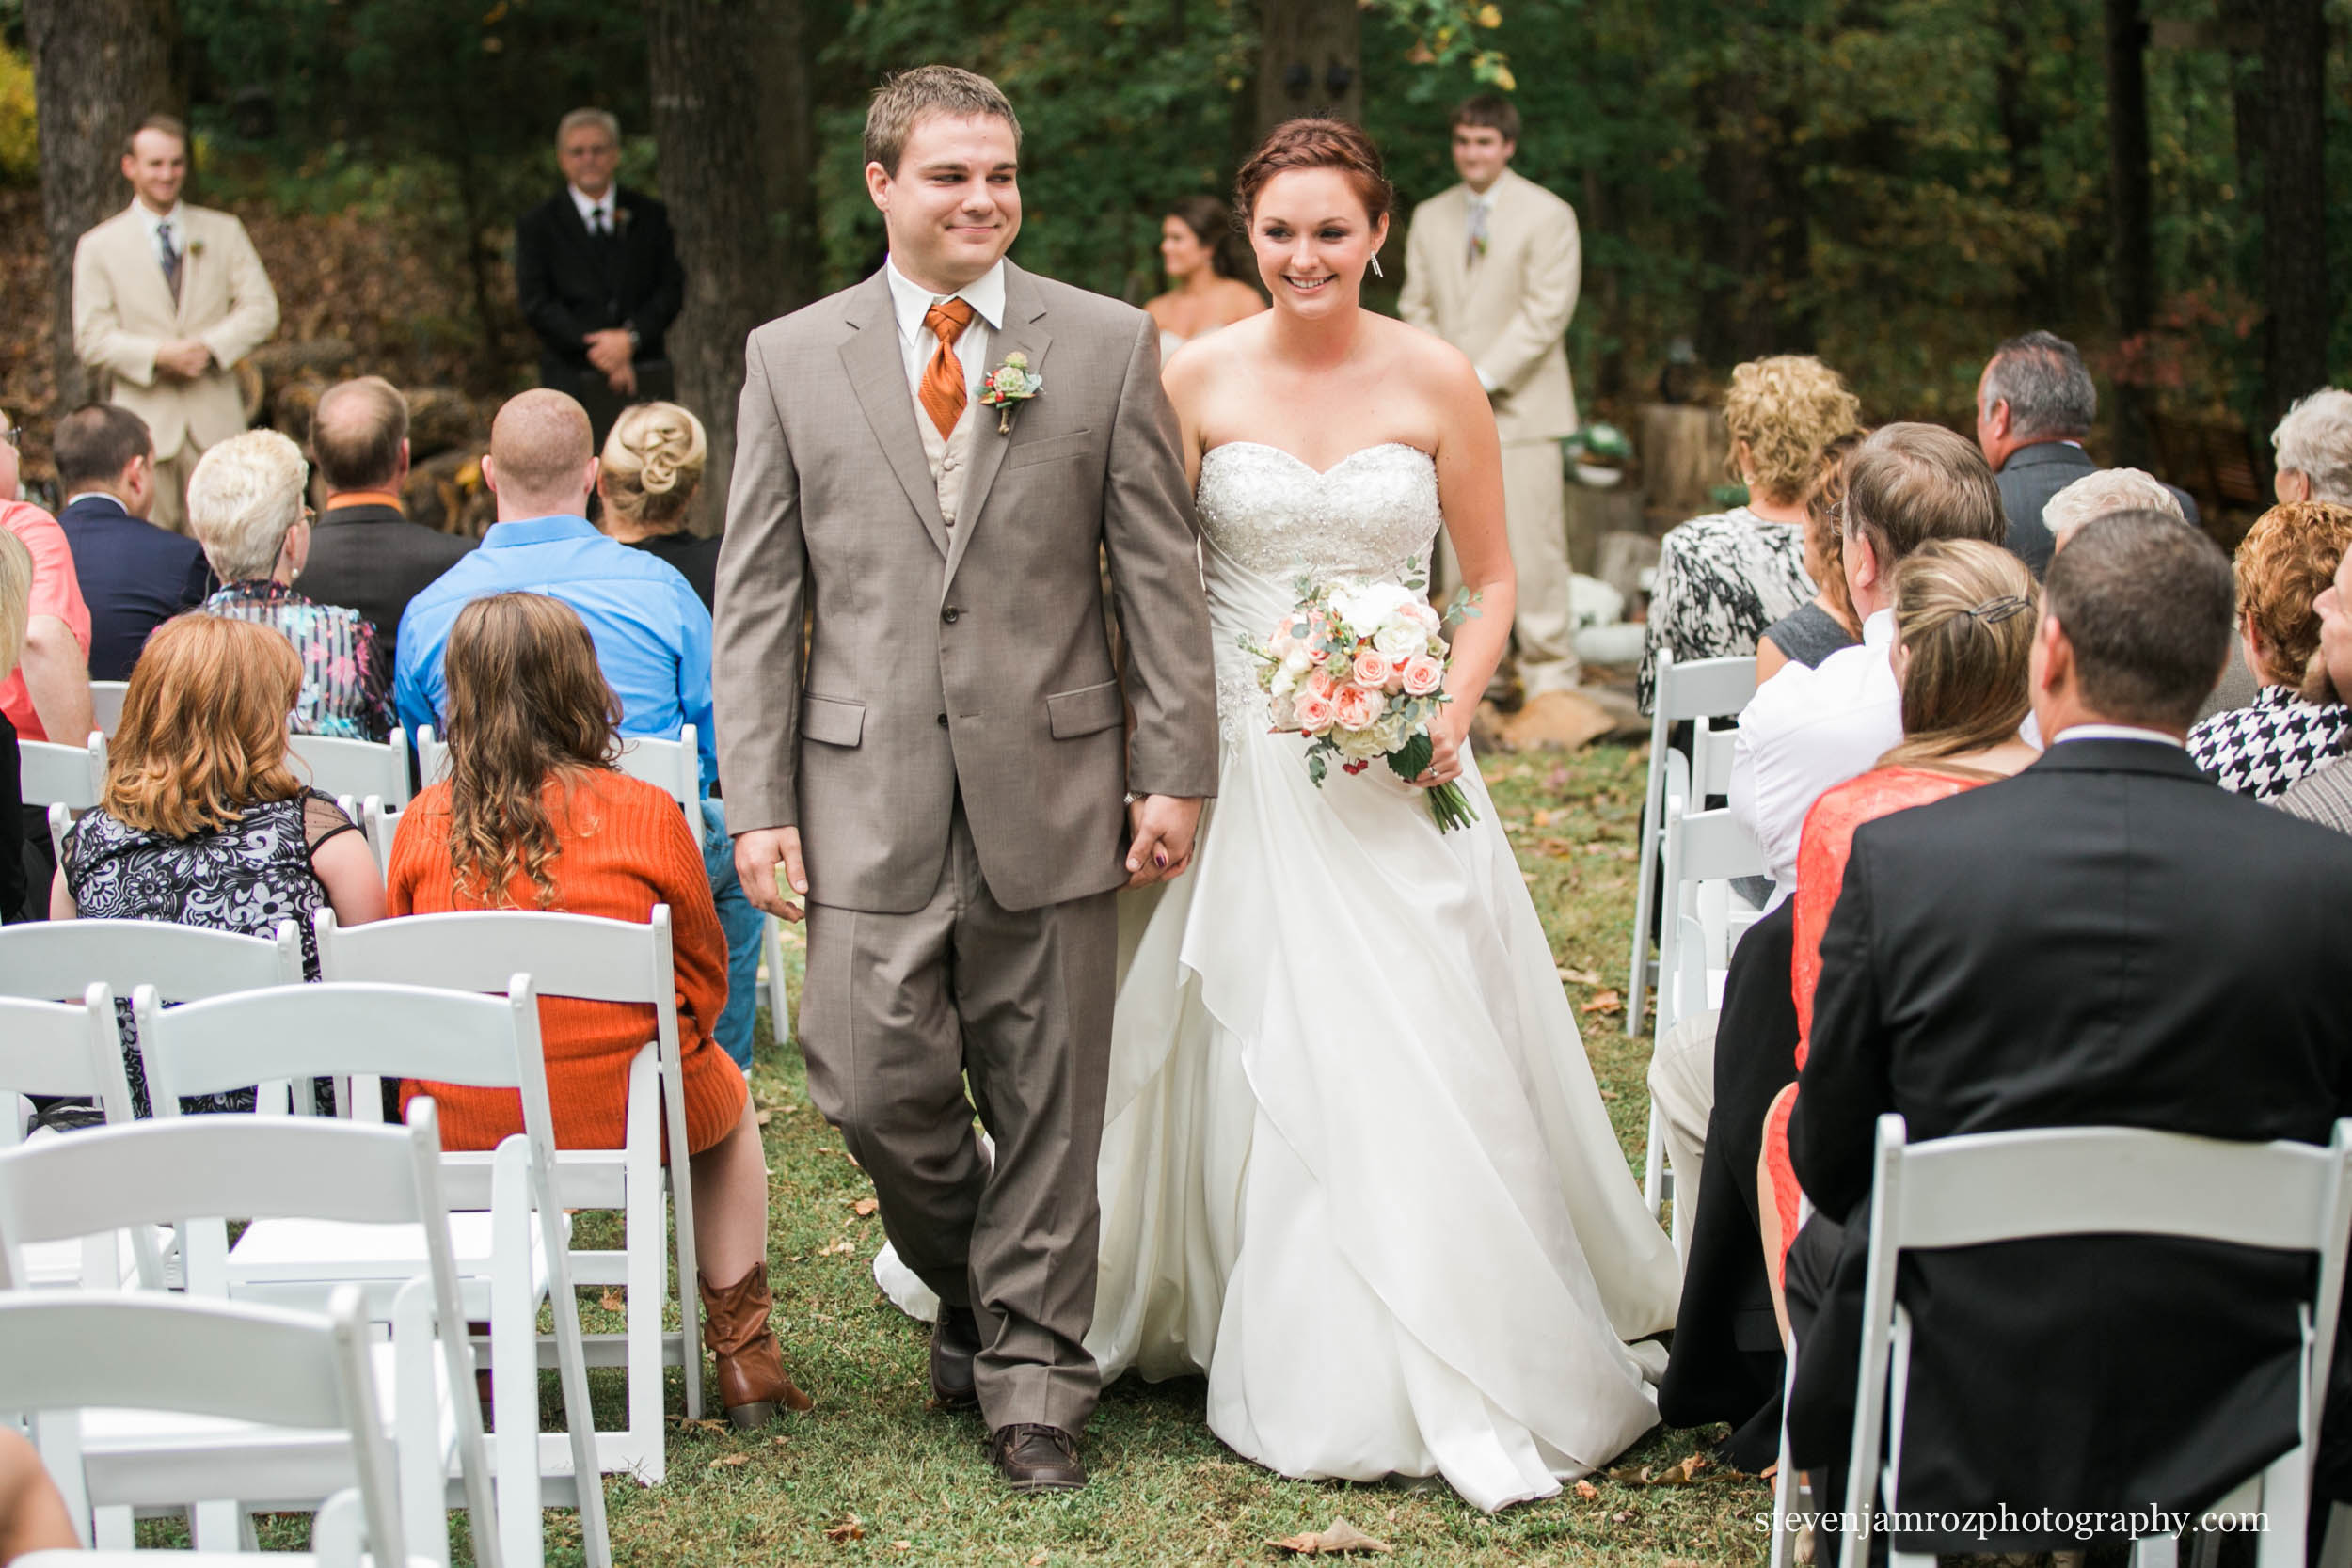 youngsville-nc-wedding-steven-jamroz-photography-0212.jpg